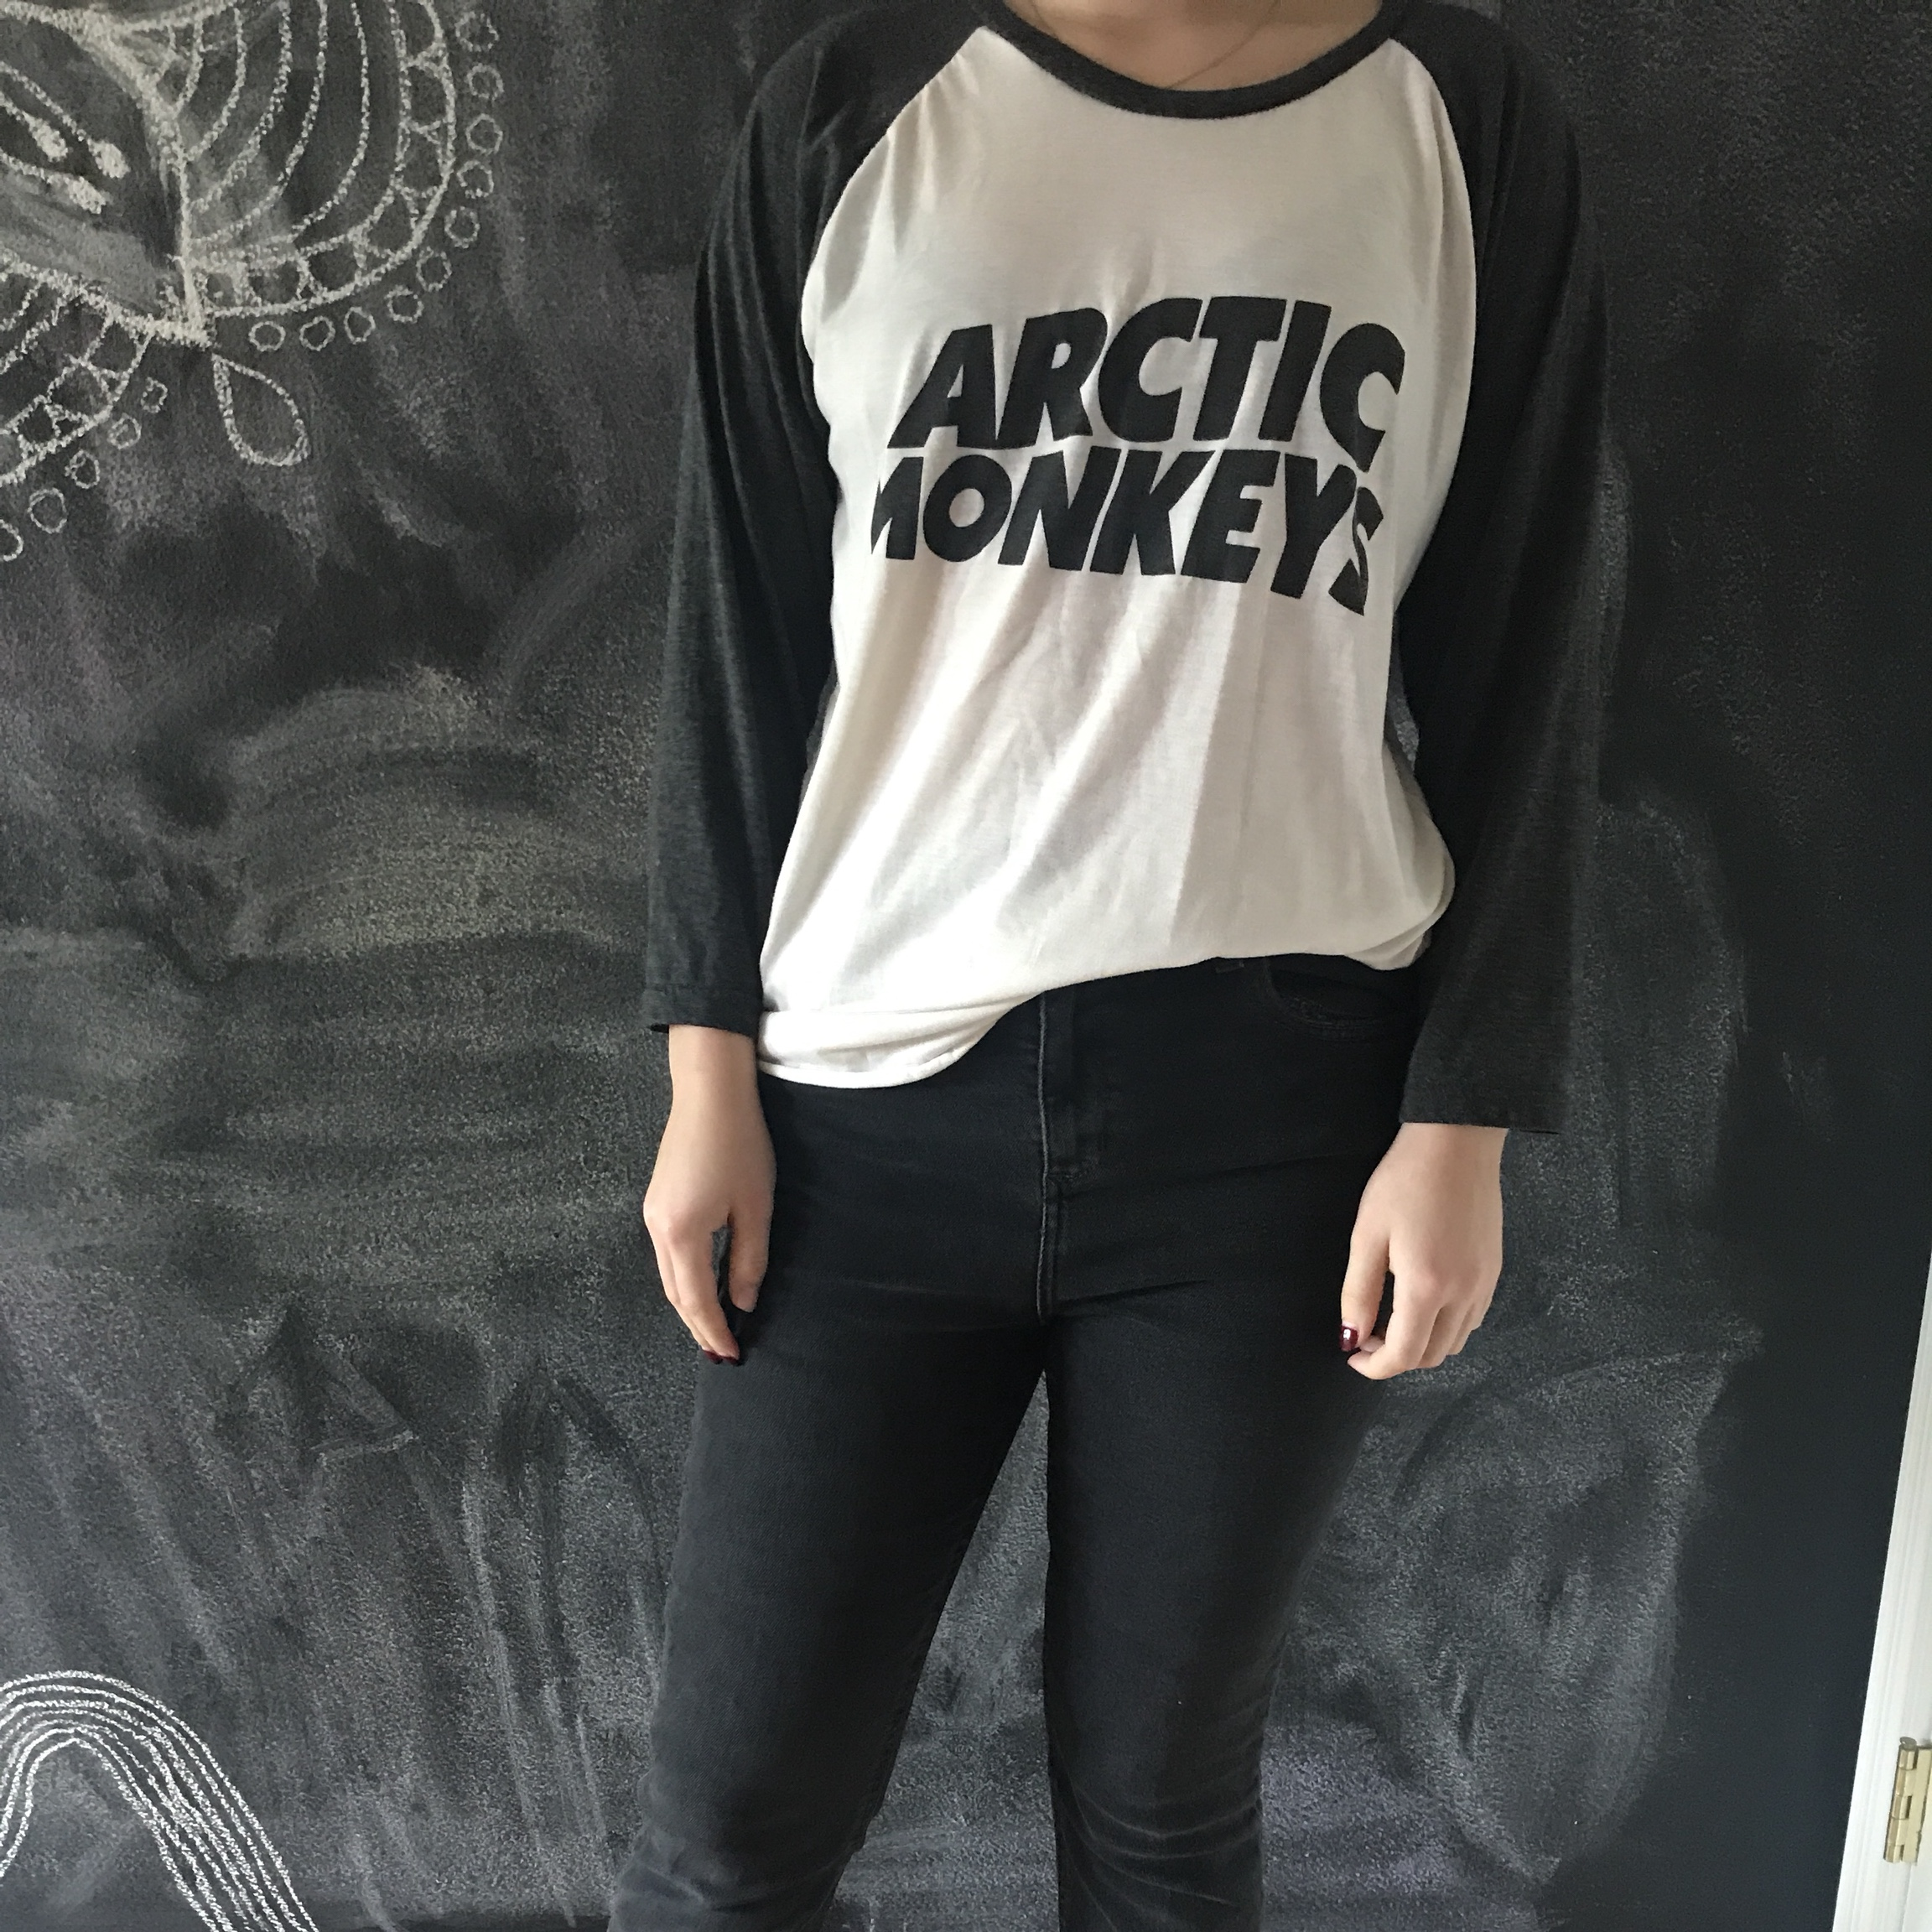 a5ca640bd63 Arctic Monkeys band t-shirt Bought from Camden Market in L - Depop